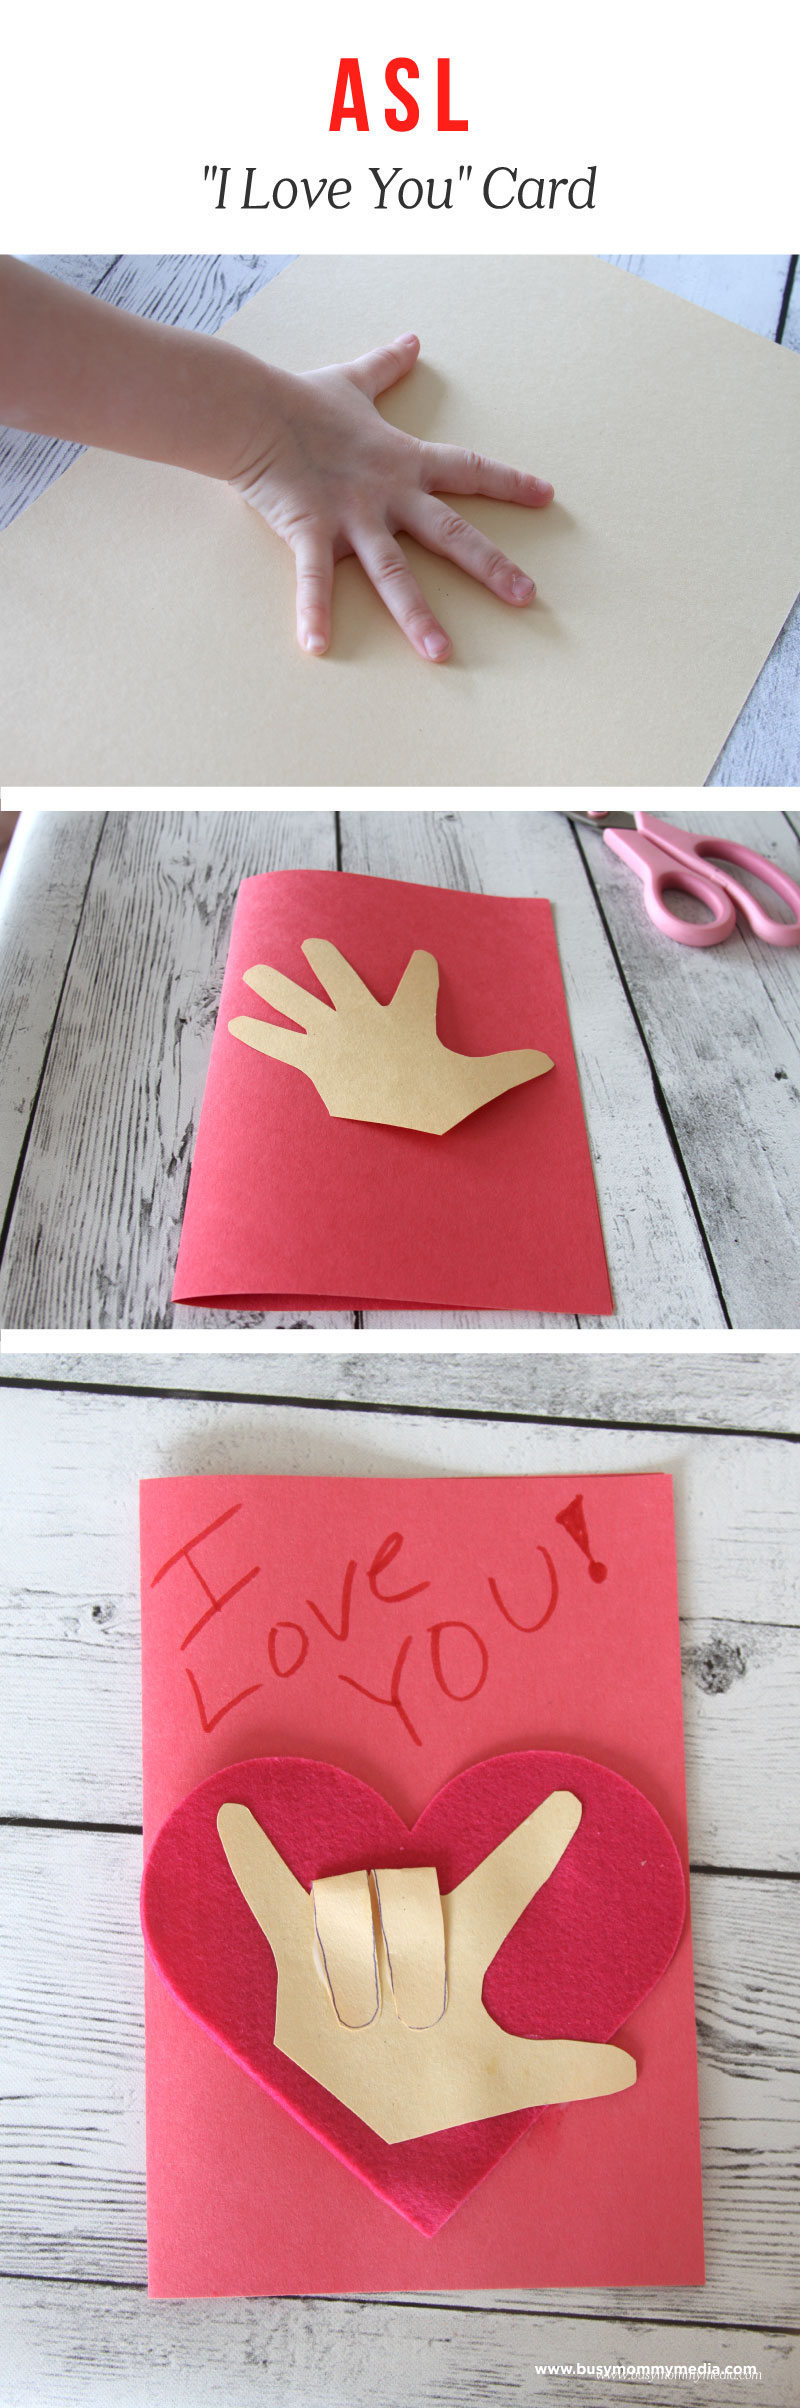 """ASL Craft for Kids - """"I Love You"""" Card for Valentine's Day"""